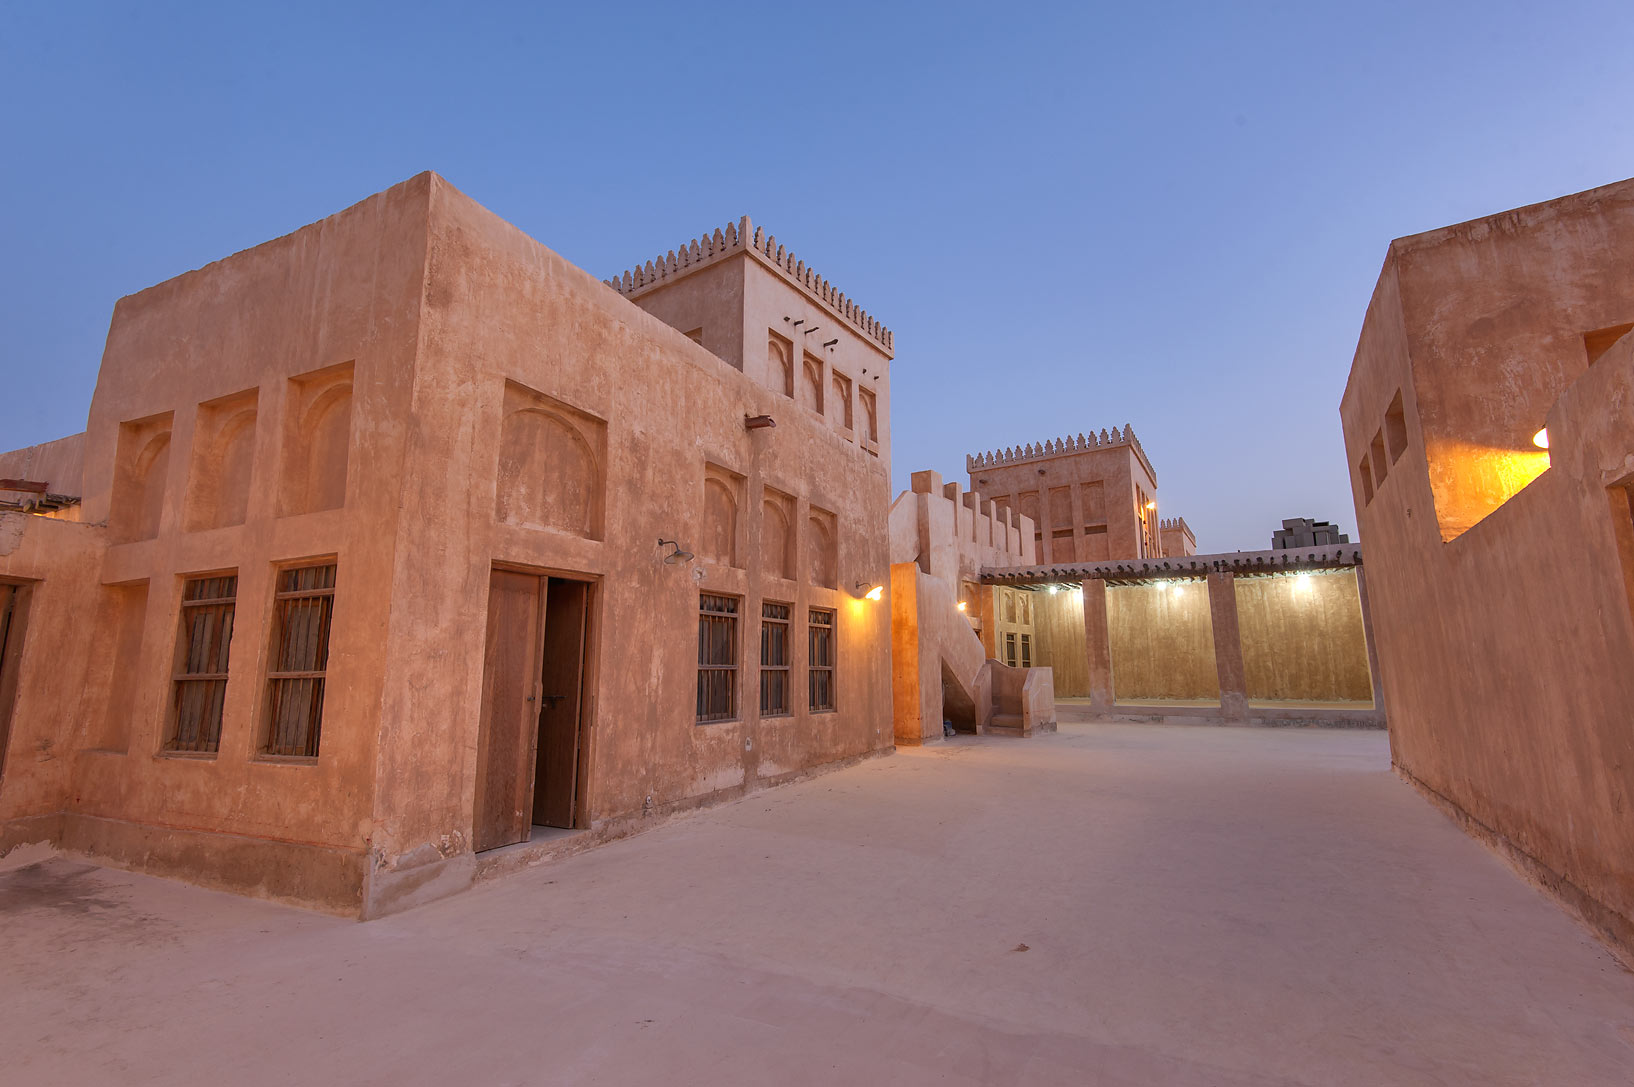 Traditional houses in Al Wakra Heritage Village (Souq Waqif in Al Wakrah). Qatar